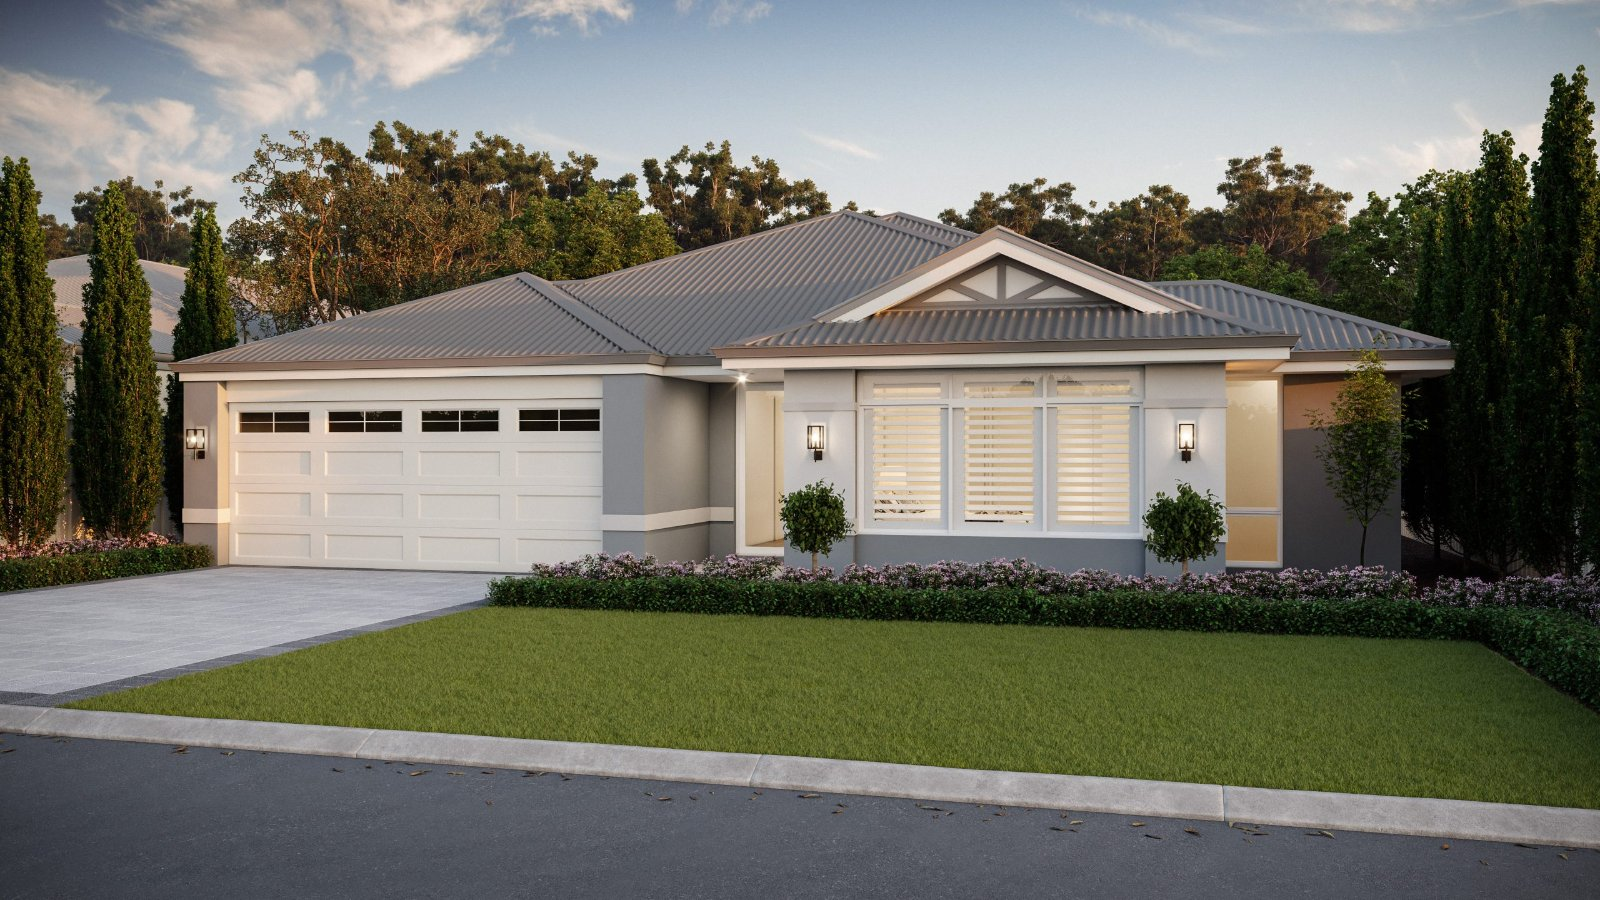 coogee plunkett homes vasse house and land packages elevation